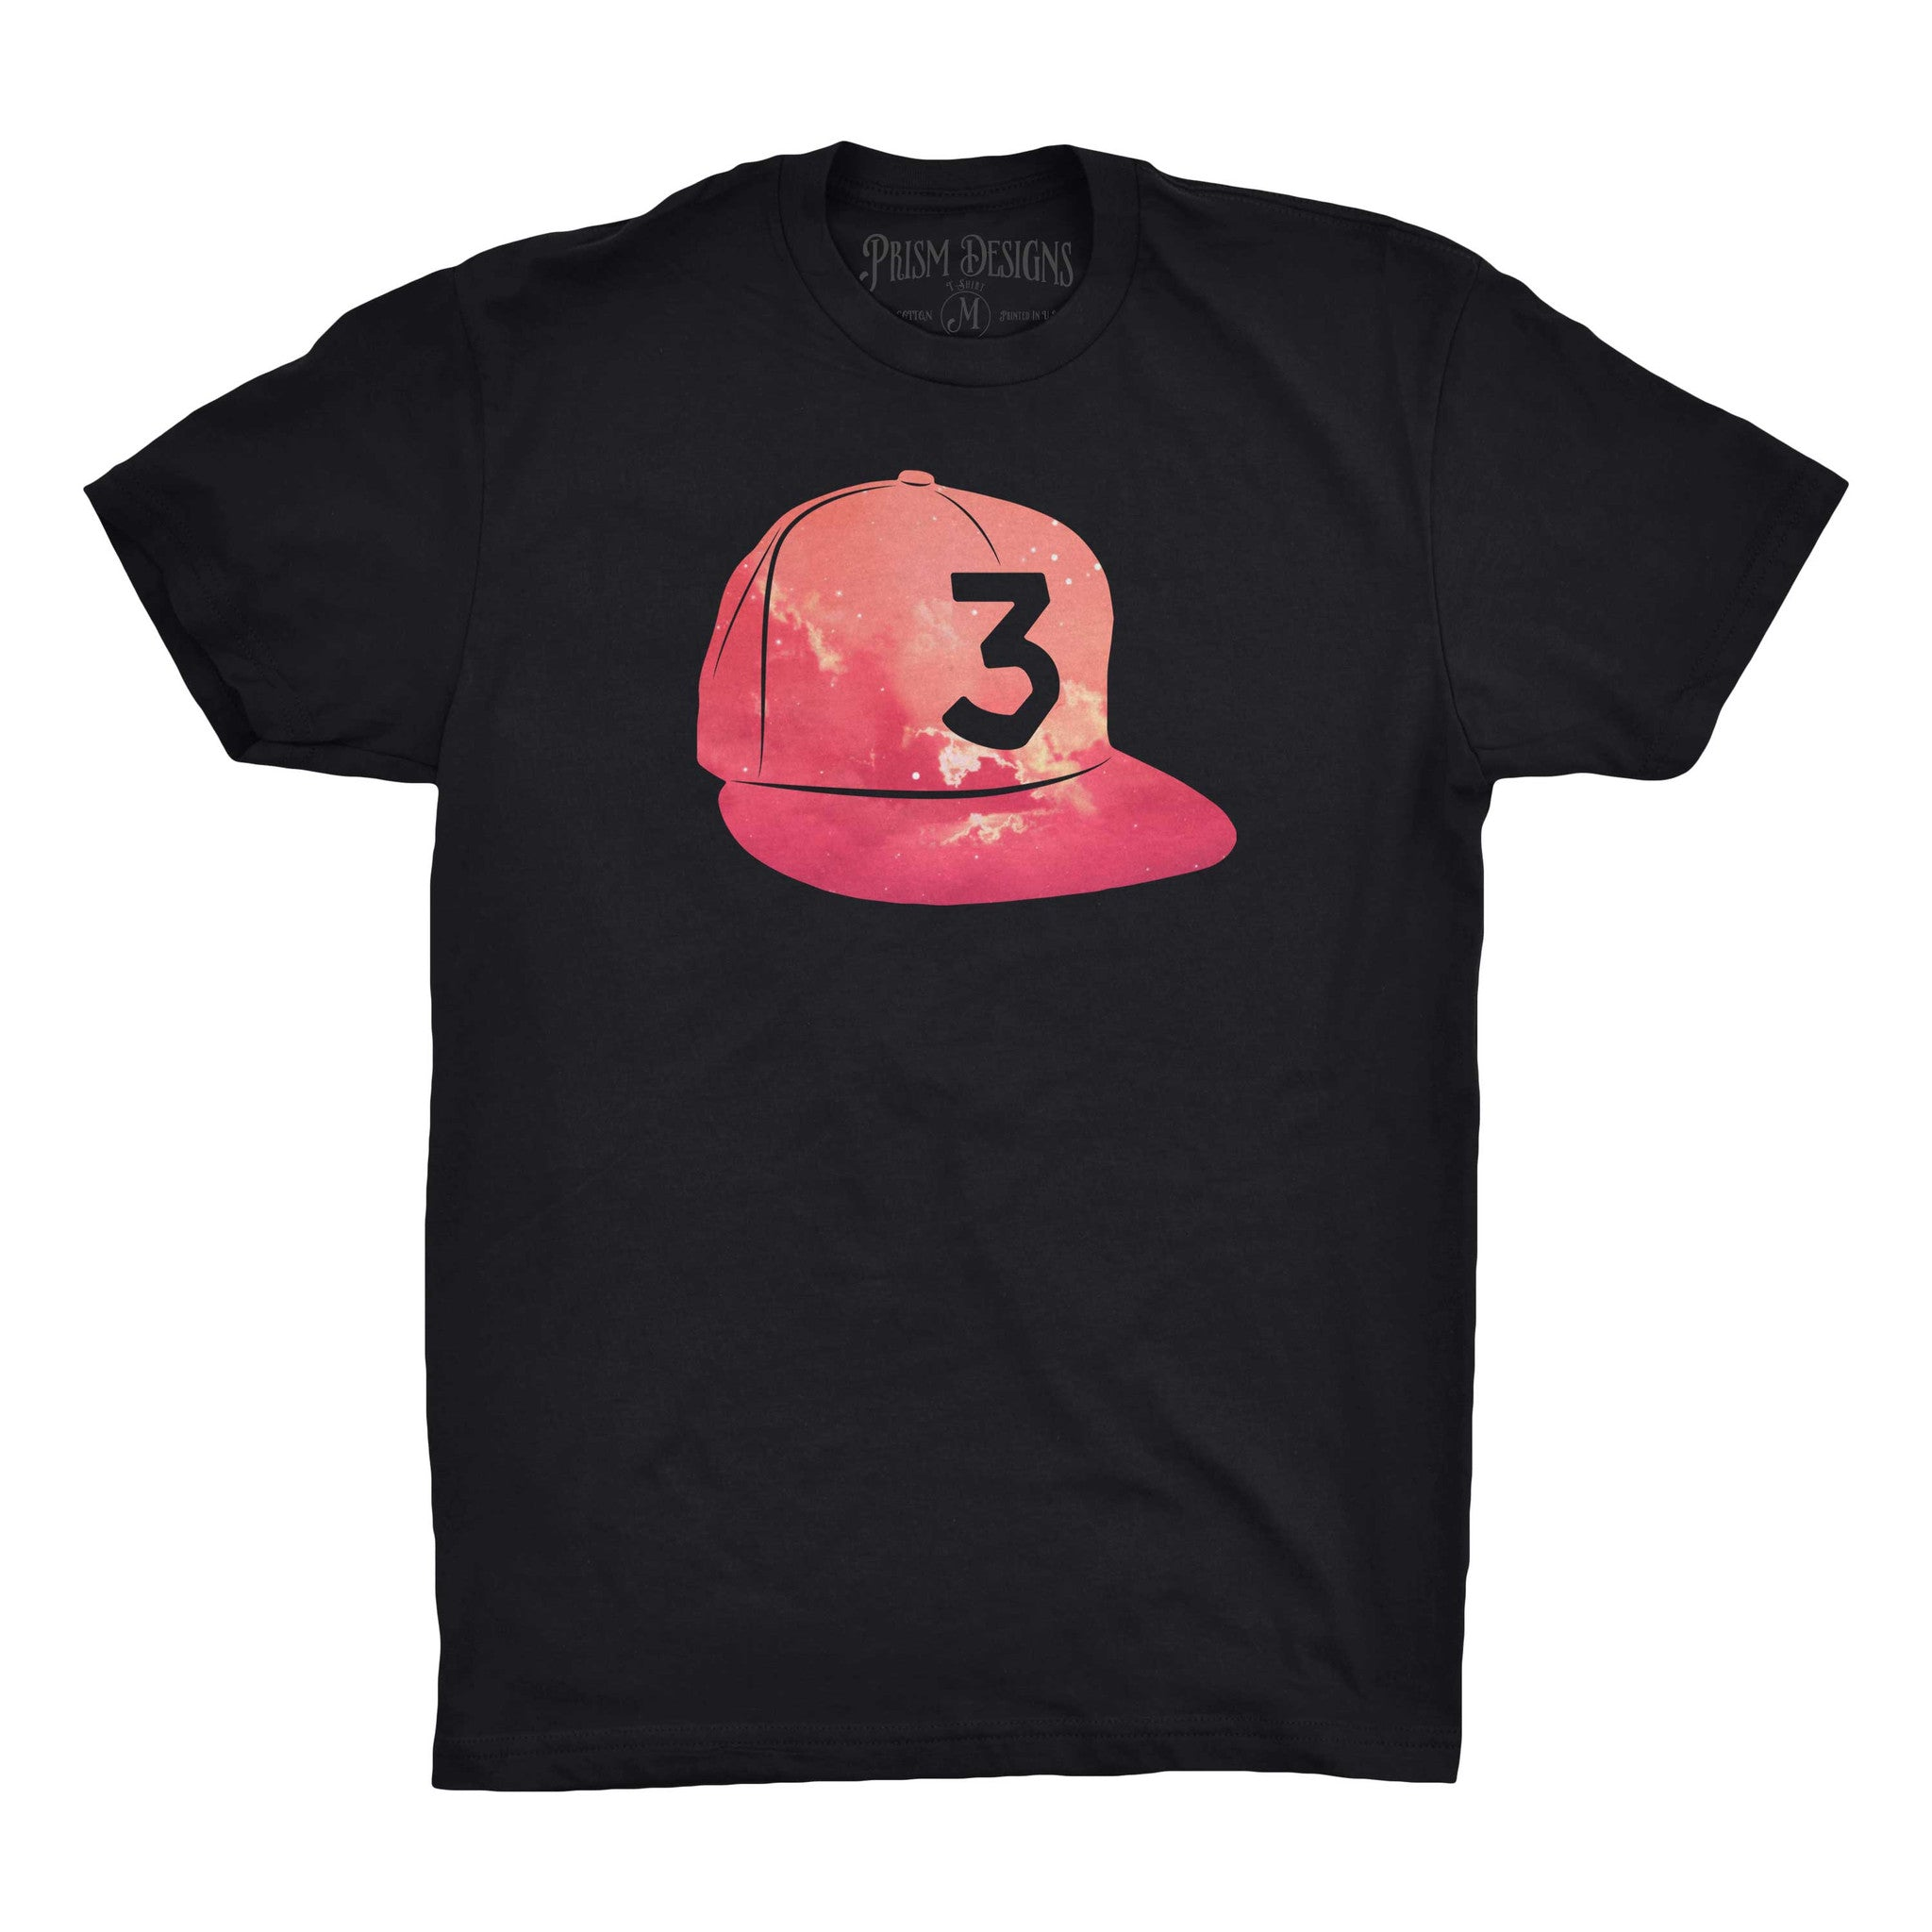 Coloring book chance the rapper hat - Chance The Rapper 3 Hat Colored T Shirt